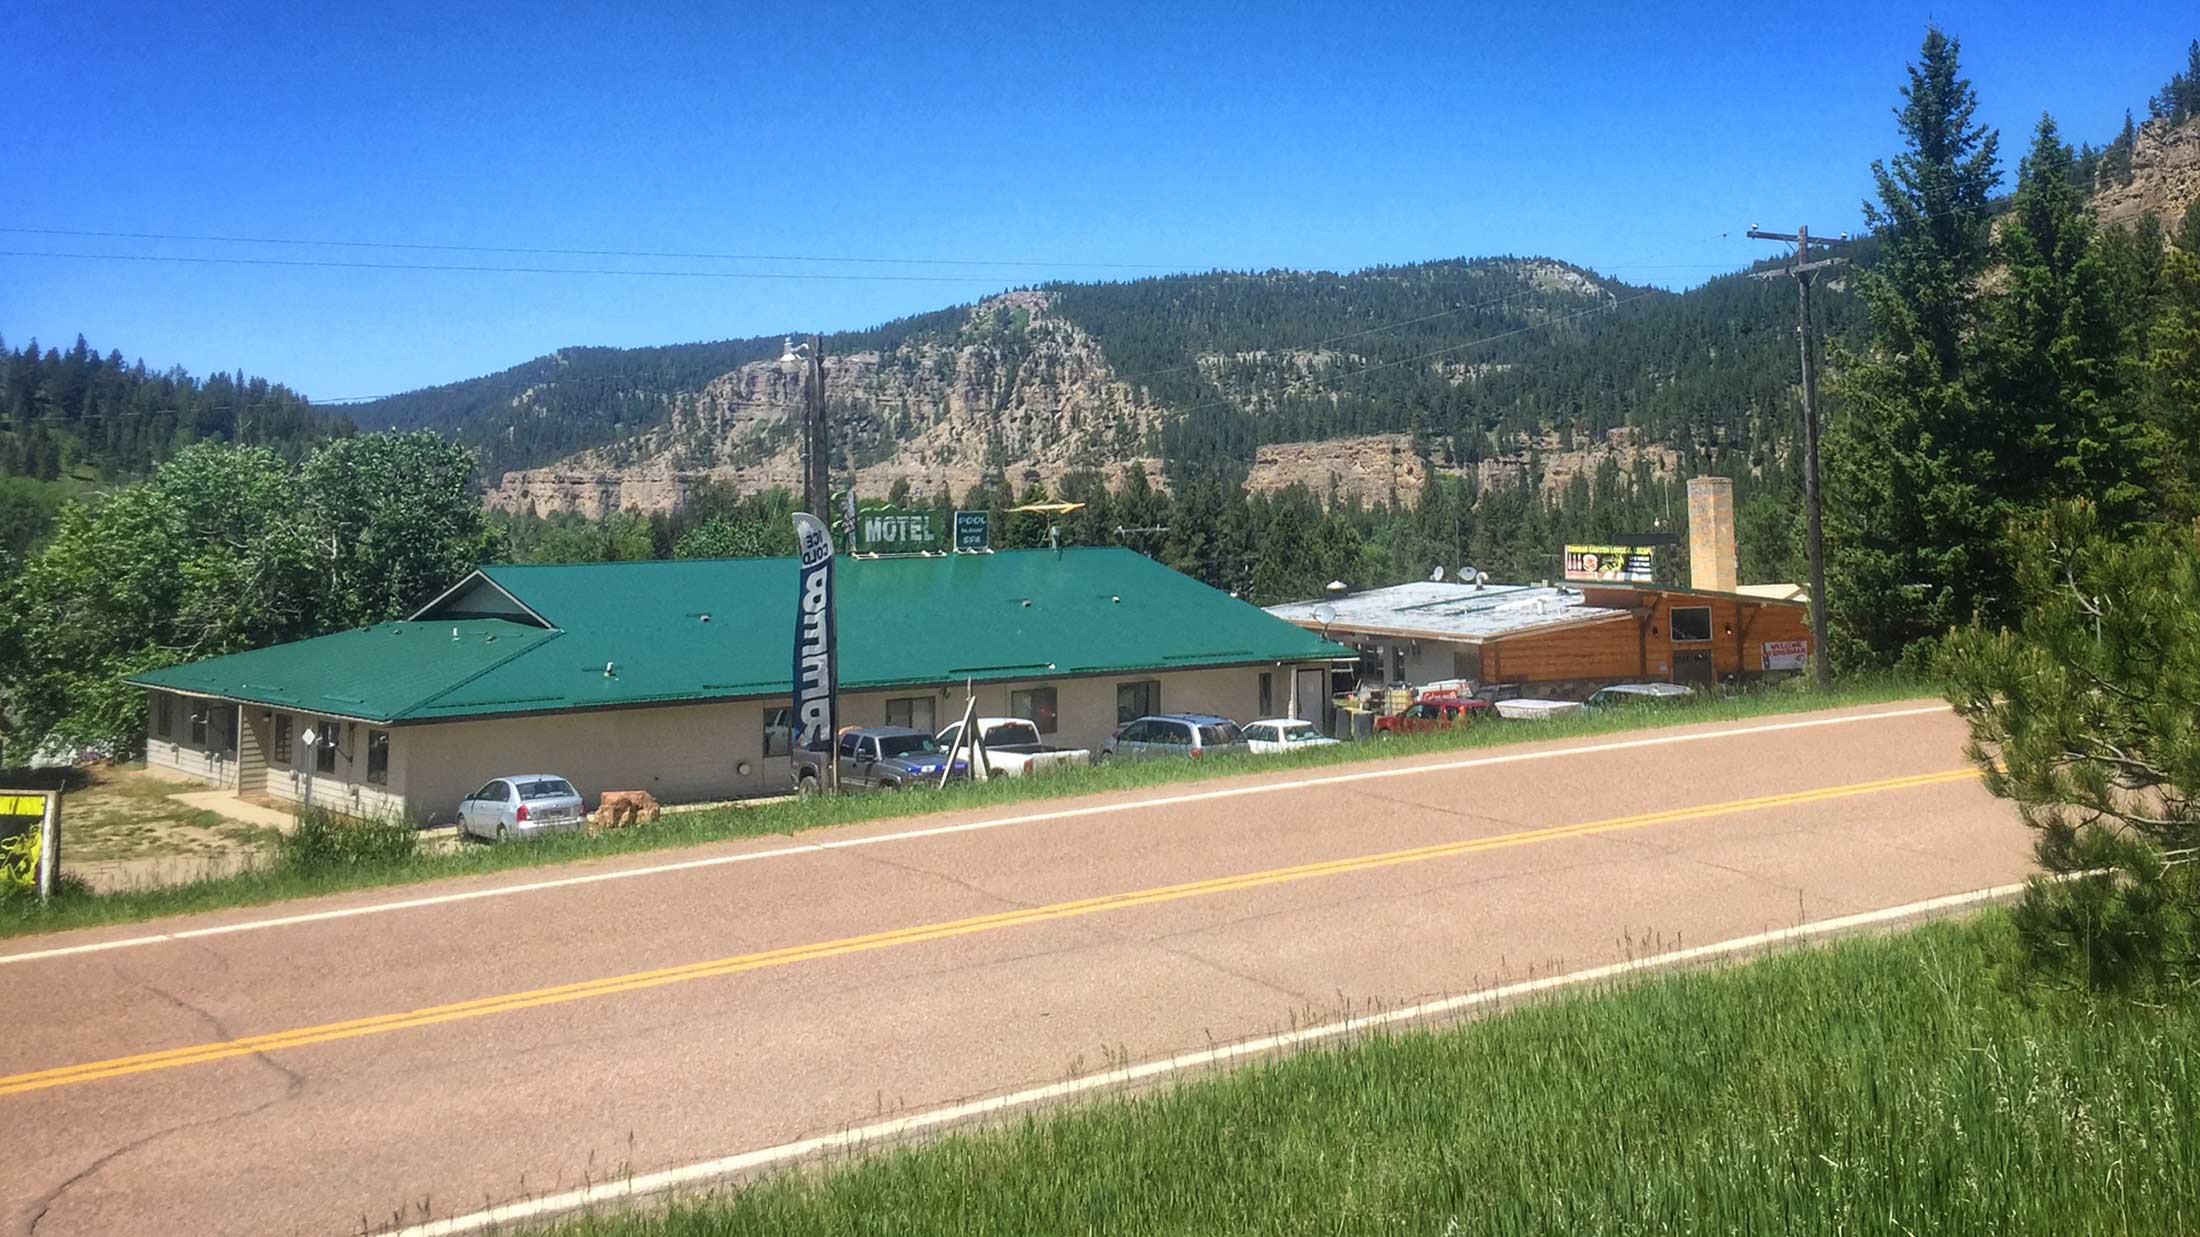 Stay and play at Cougar Canyon Lodge and Escape in Monarch, Montana located on Highway 89 in the Little Belt Mountains.